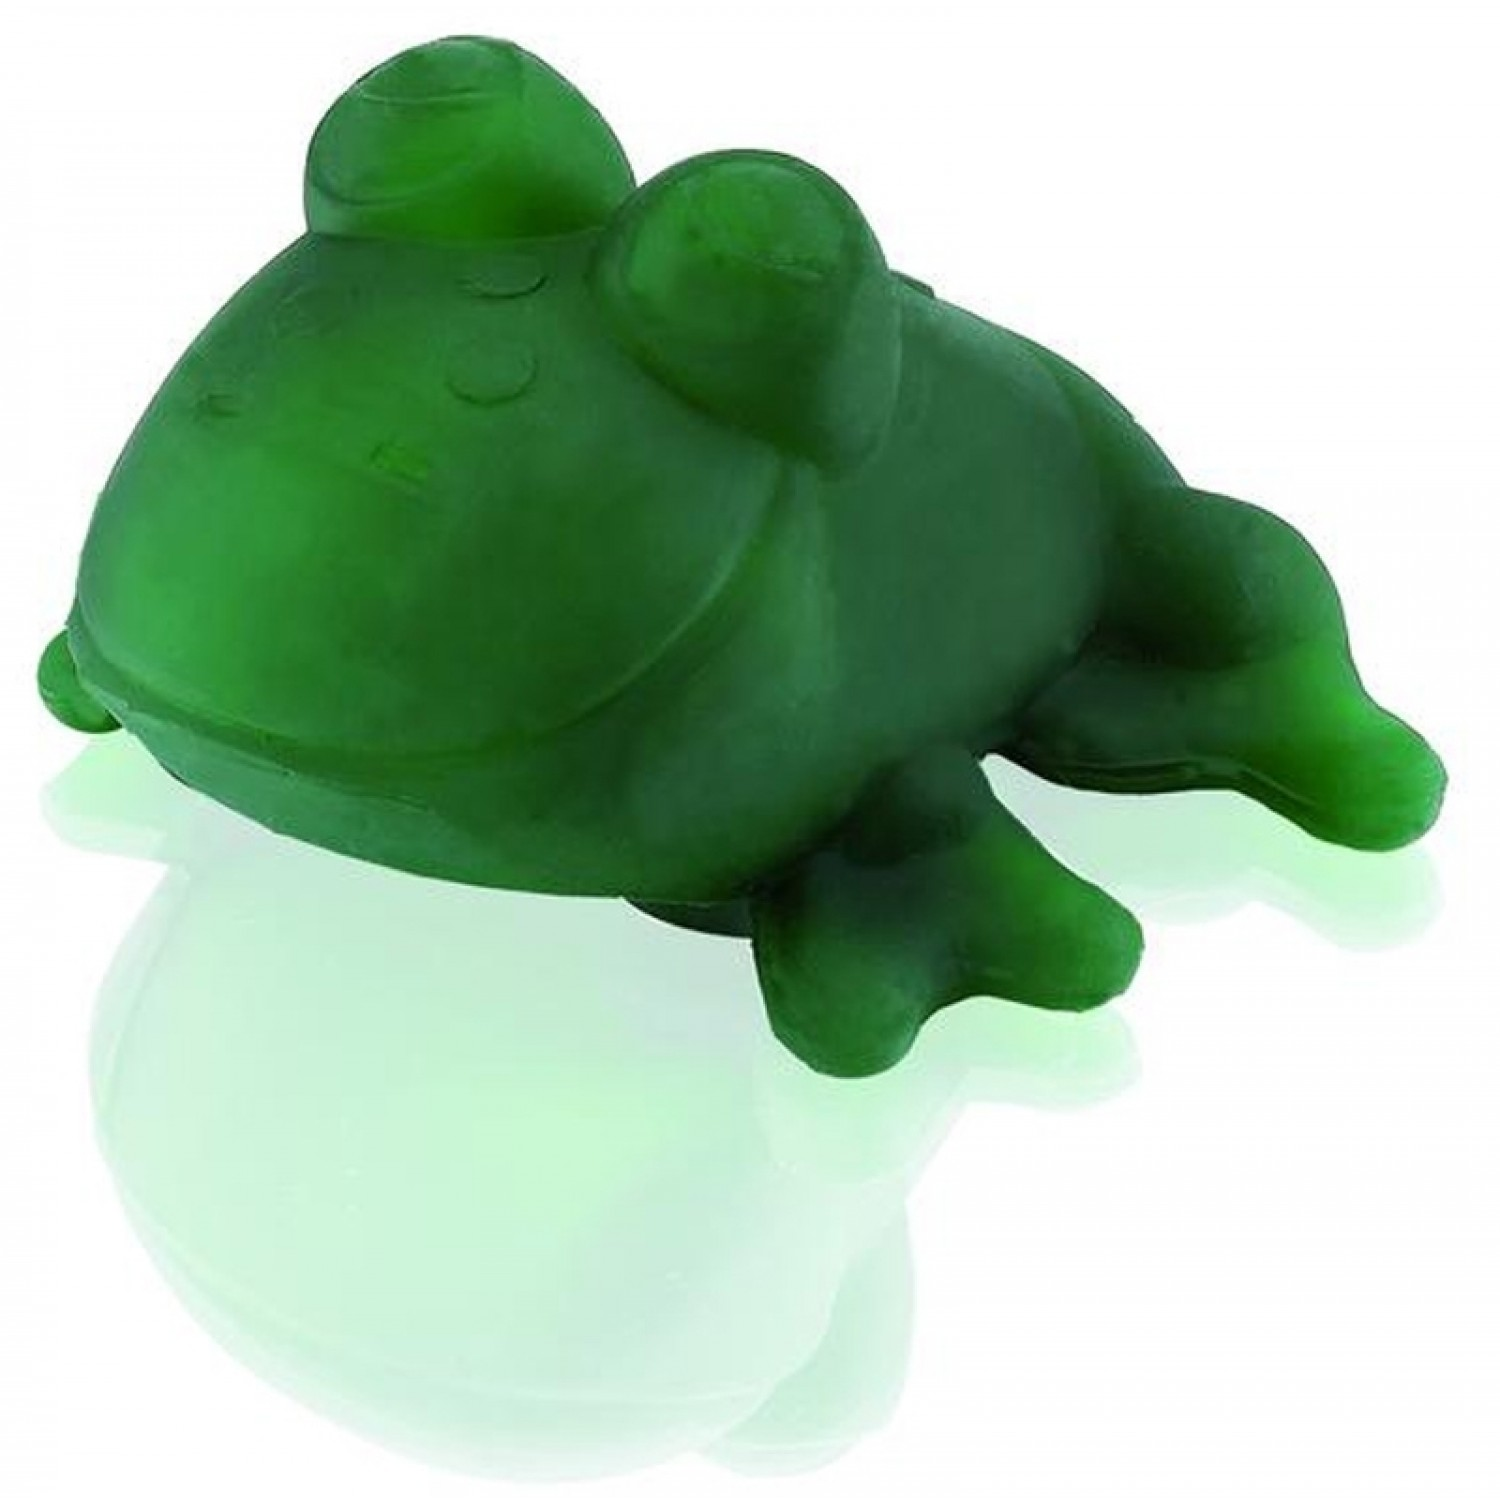 Hevea Fred, the green frog - natural rubber eco bath toy